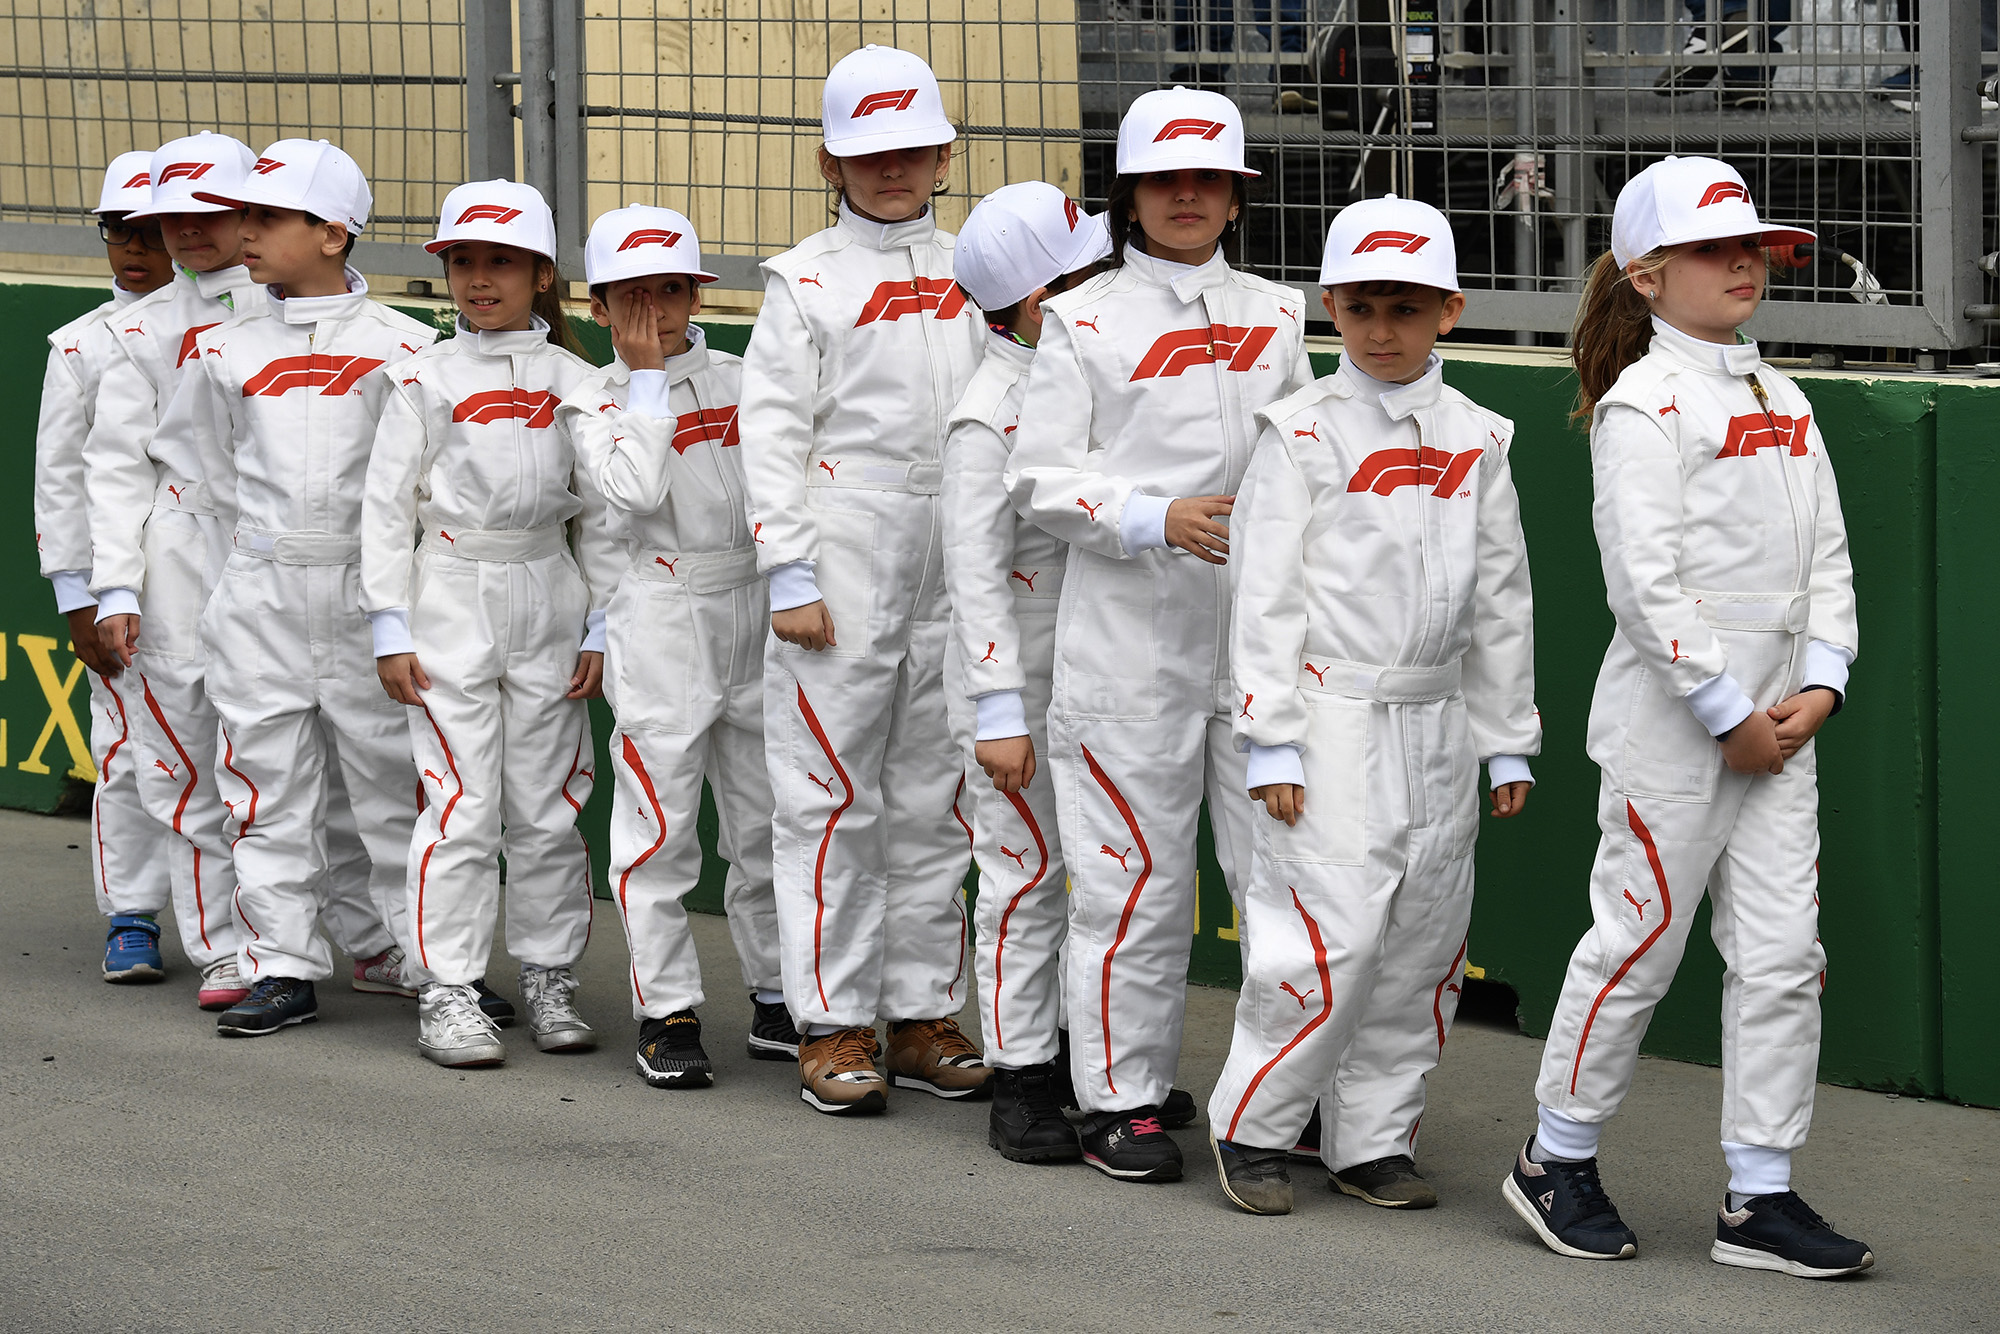 F1 plans diversity boost with driver development schemes and new presenters